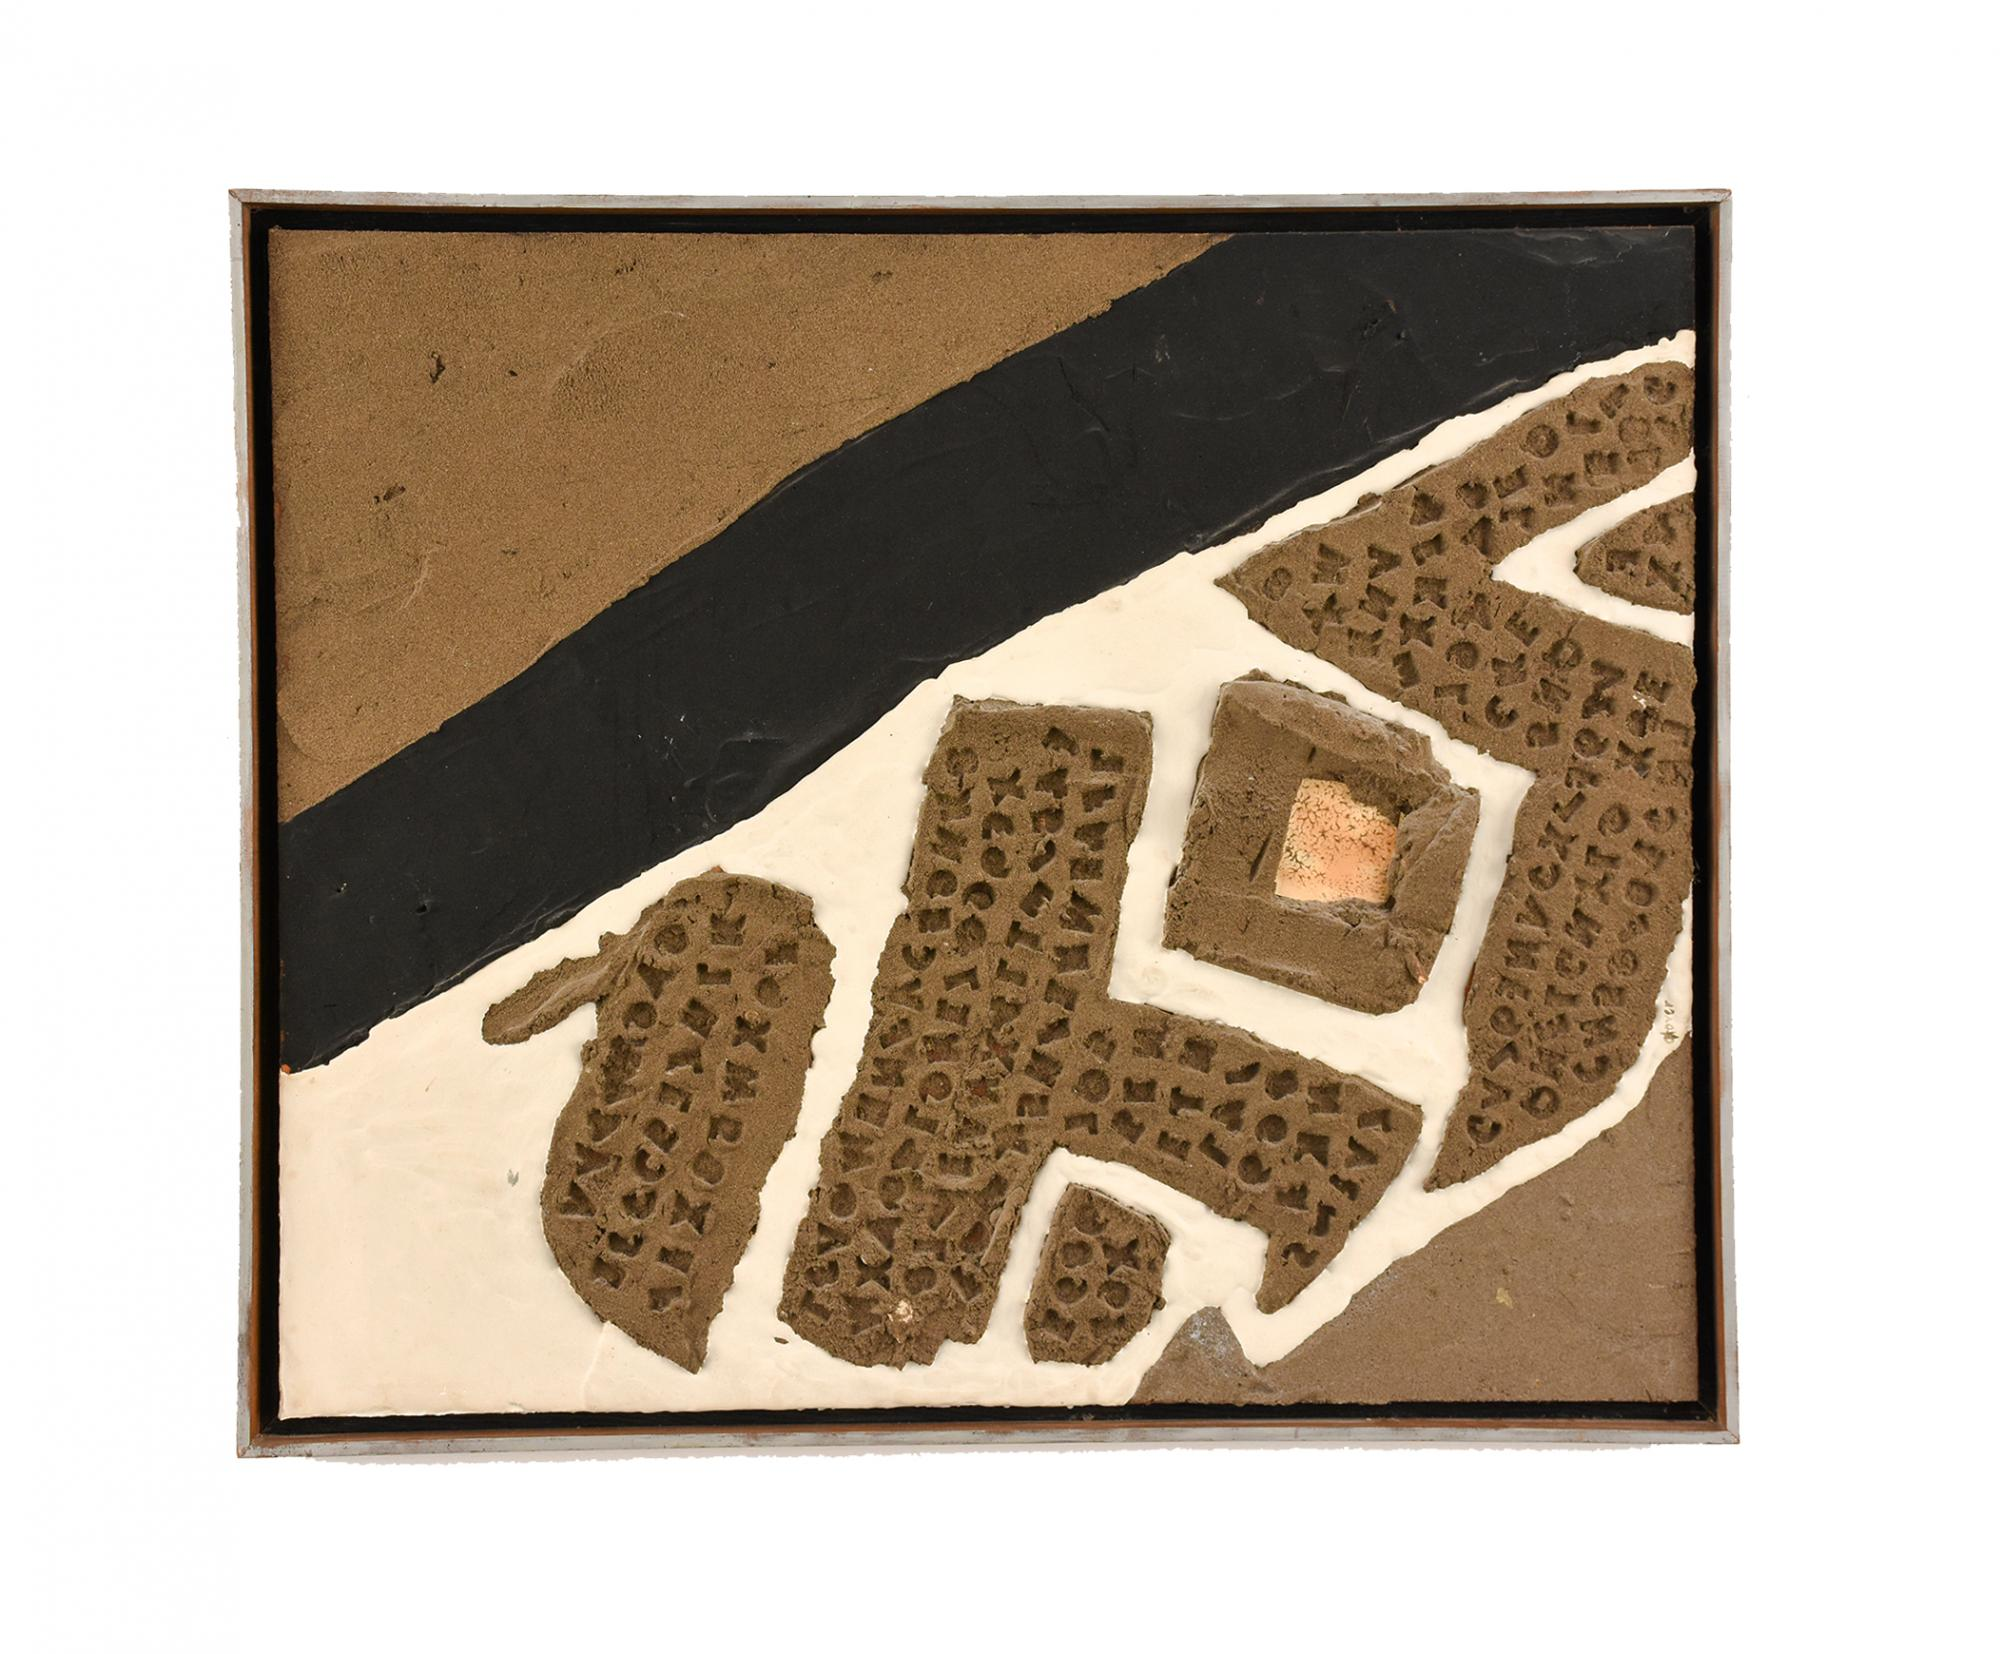 Pam Glover (b. China, 1924–2010) United States, Letters on Letters, c. 1965, Plaster and pigment on board, Gift of F. Rene Van de Carr M.D. [2012.10]